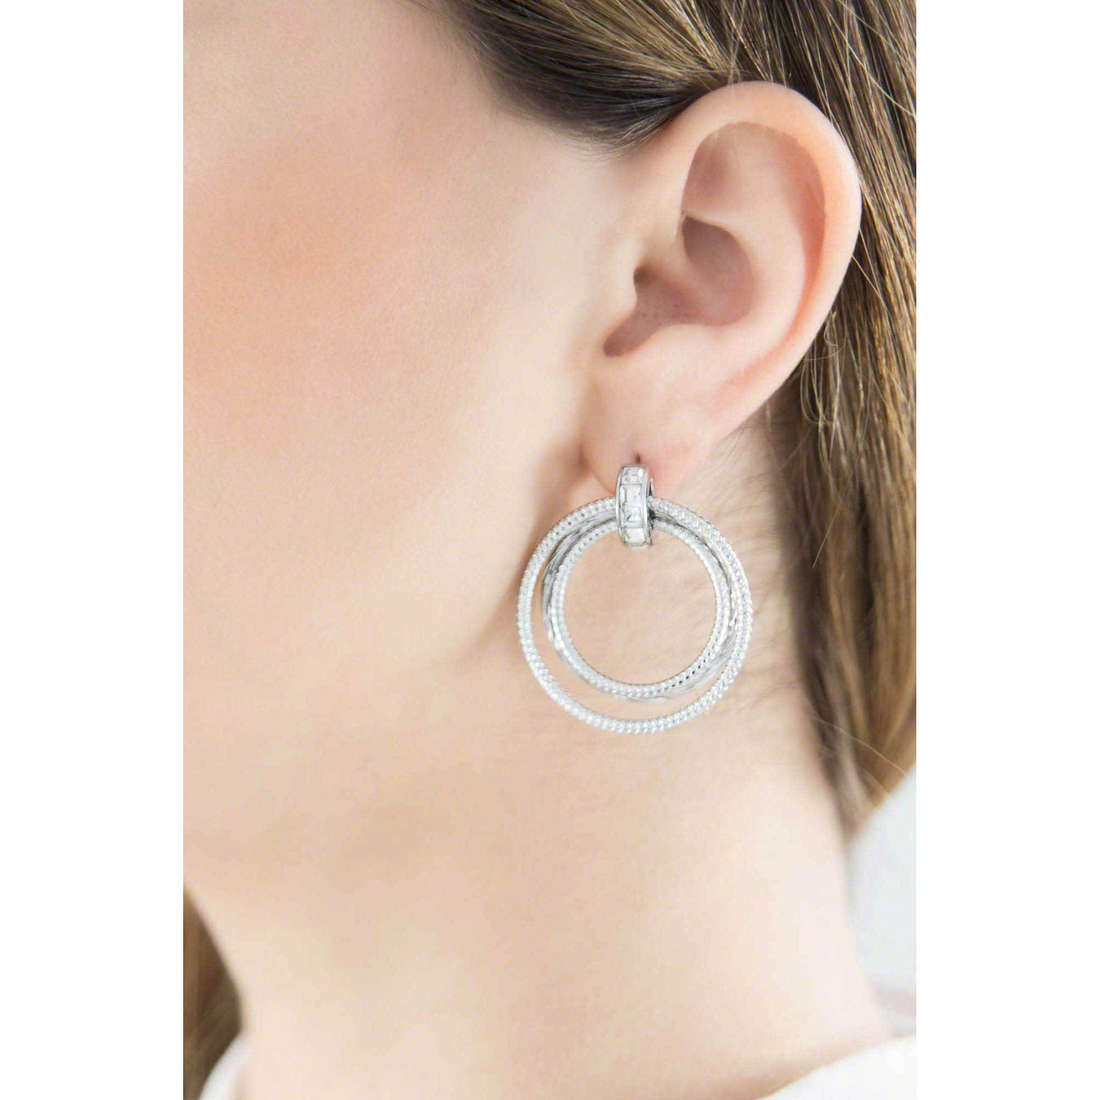 Brosway boucles d'oreille Falling Star femme BFG21 indosso